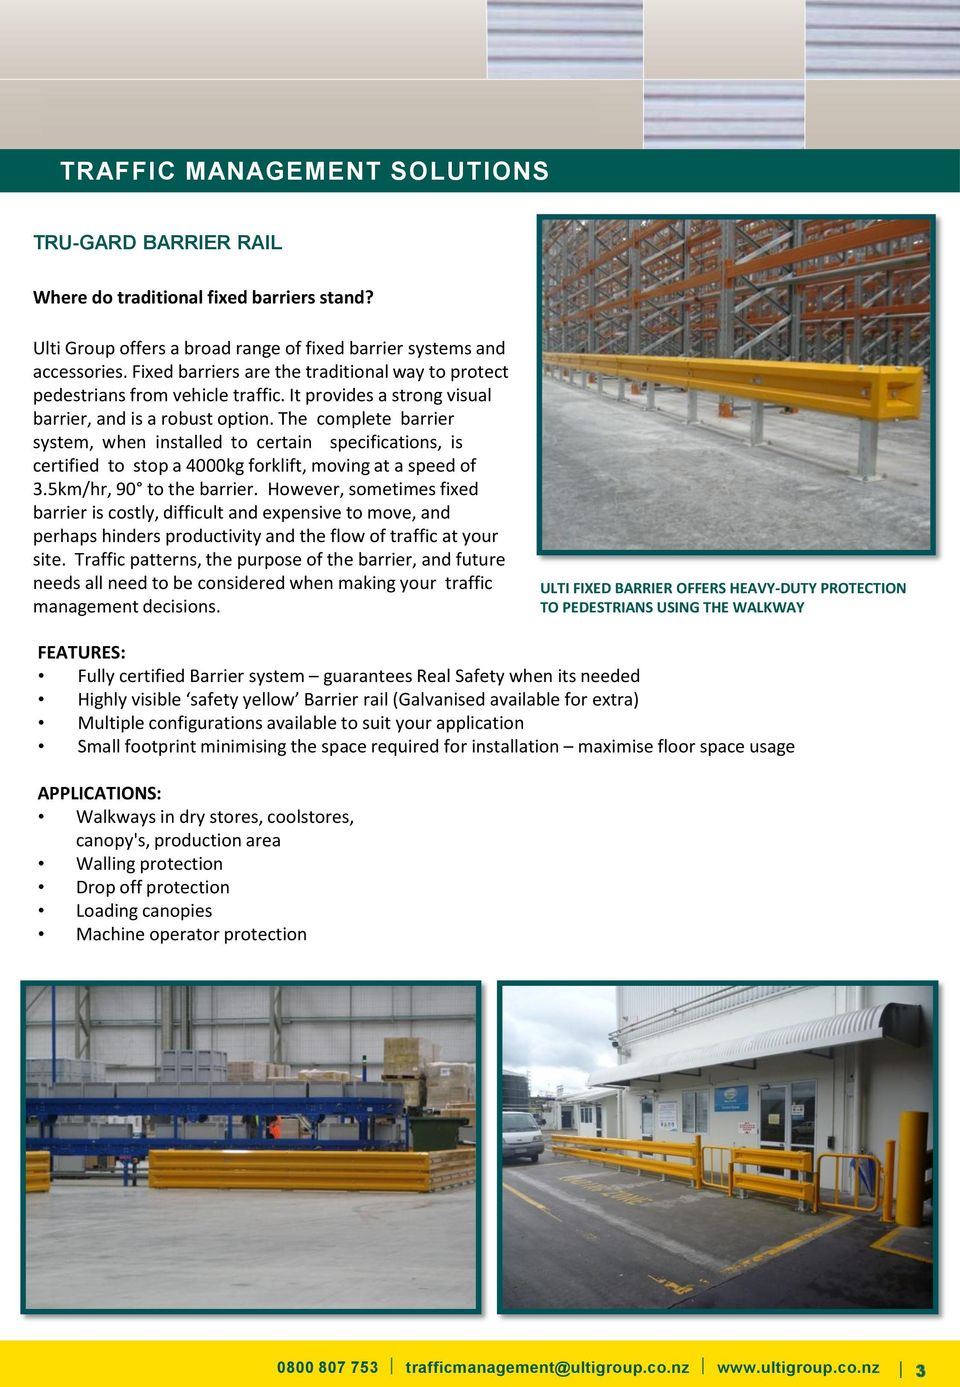 The complete barrier system, when installed to certain specifications, is certified to stop a 4000kg forklift, moving at a speed of 3.5km/hr, 90 to the barrier.